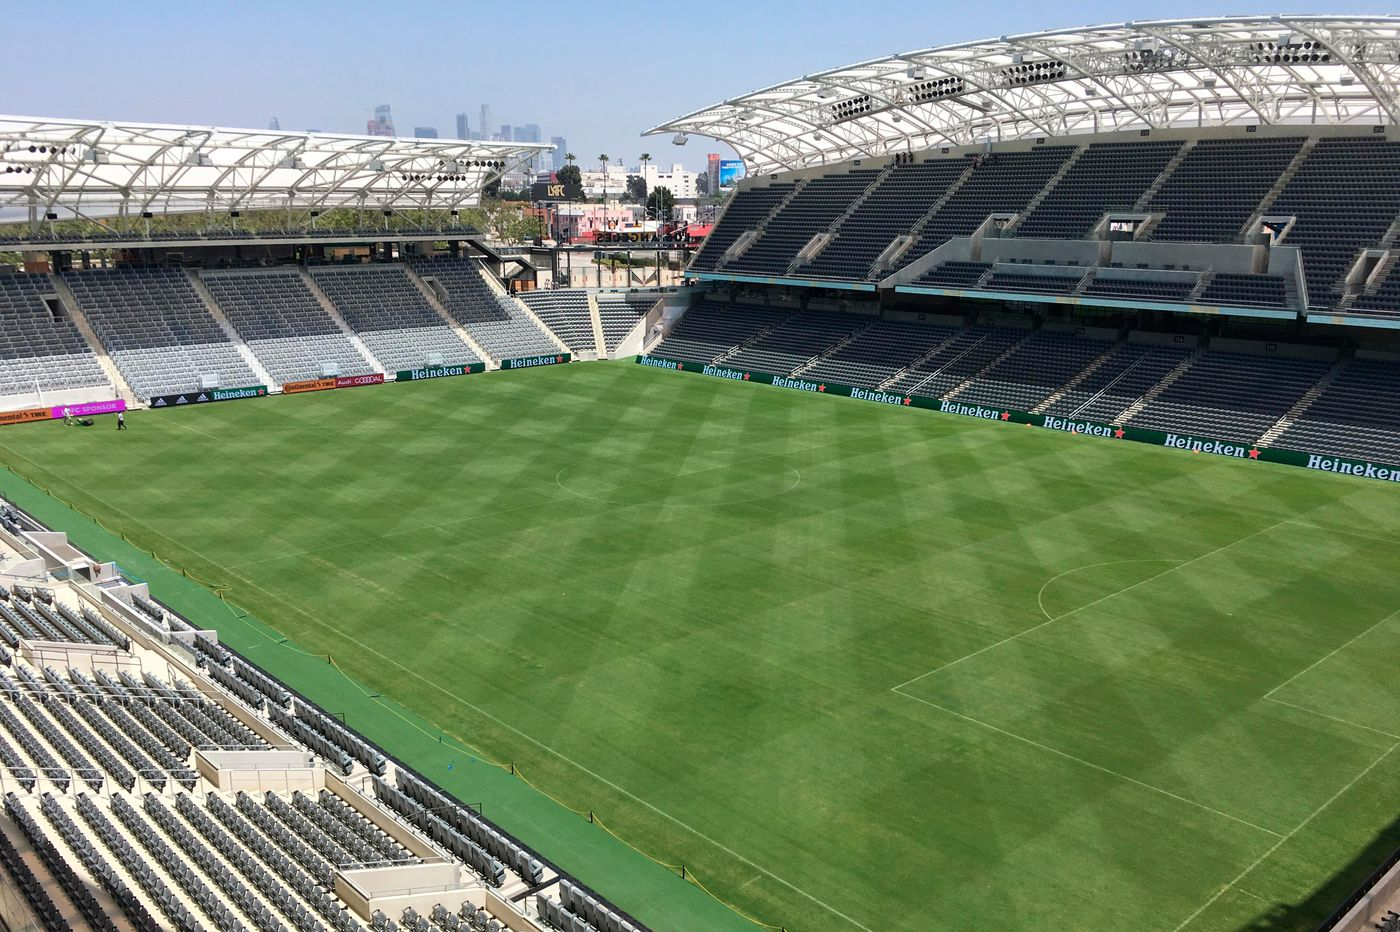 Union's game at LAFC could be played behind closed doors because of coronavirus, but odds are slim